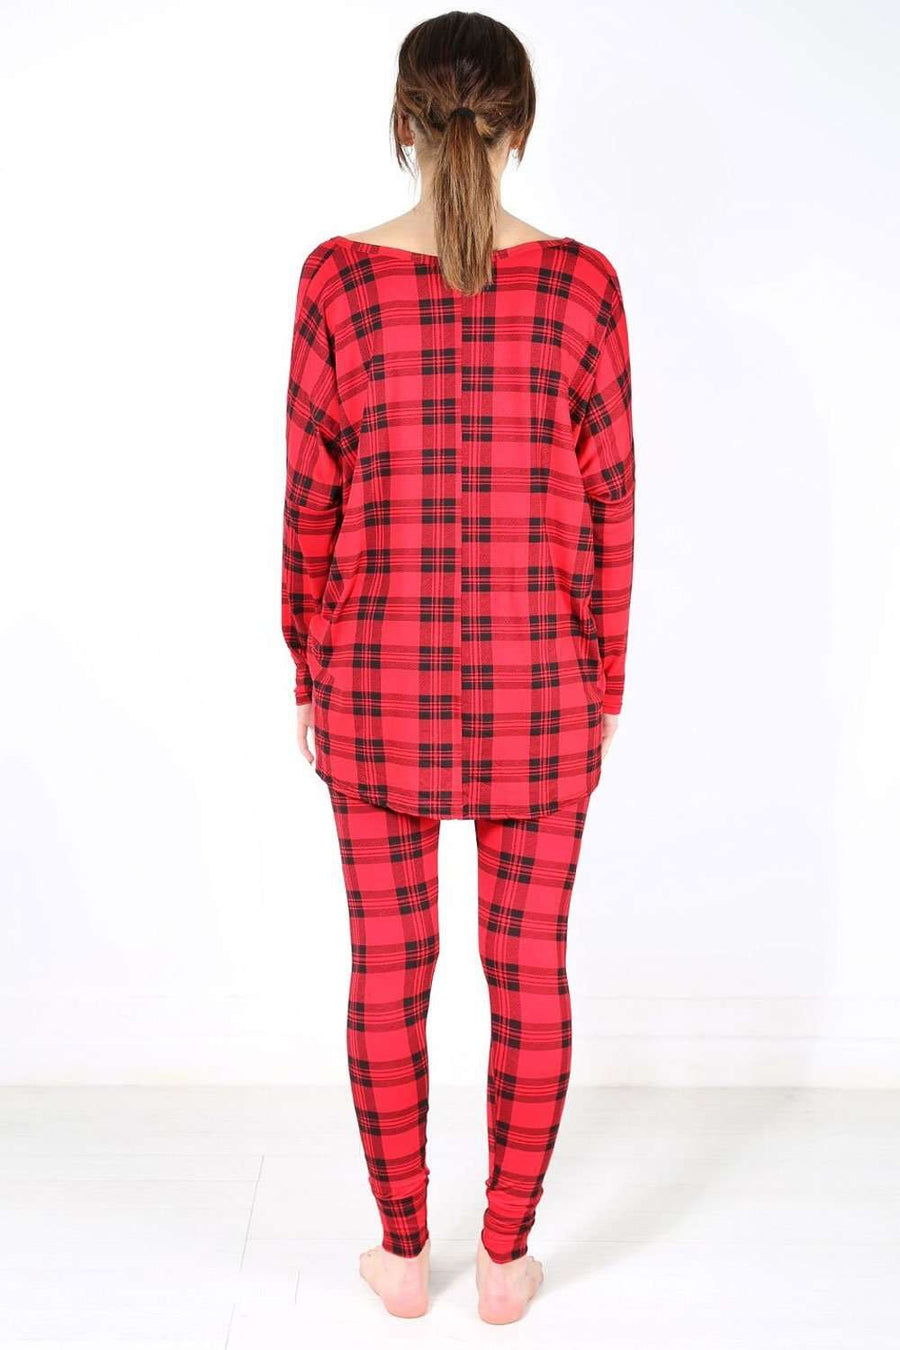 Hettie Red Tartan Lounge Wear Coord - bejealous-com